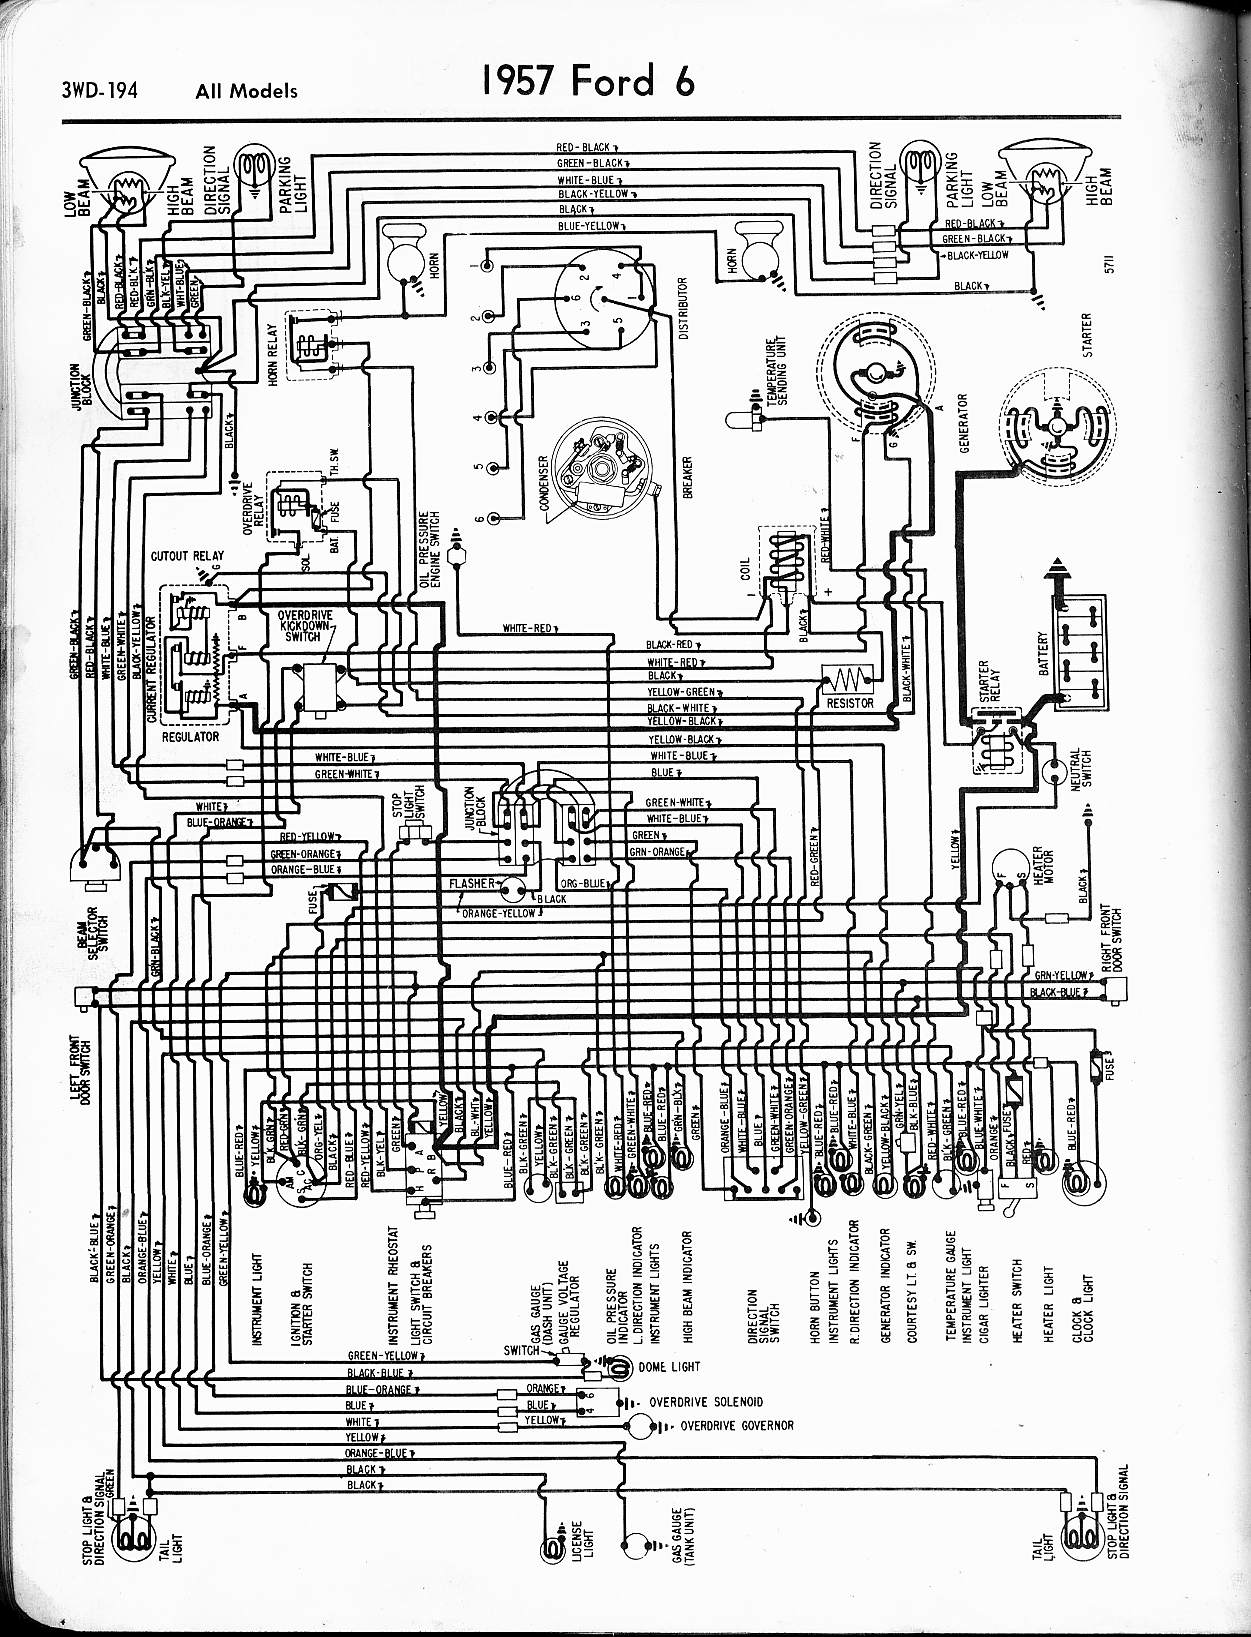 Ford Diagrams Fog Light Switch Wiring Diagram Also 3 Wire Trailer Tail Alternator System With A Figure And Such 57 Drawing